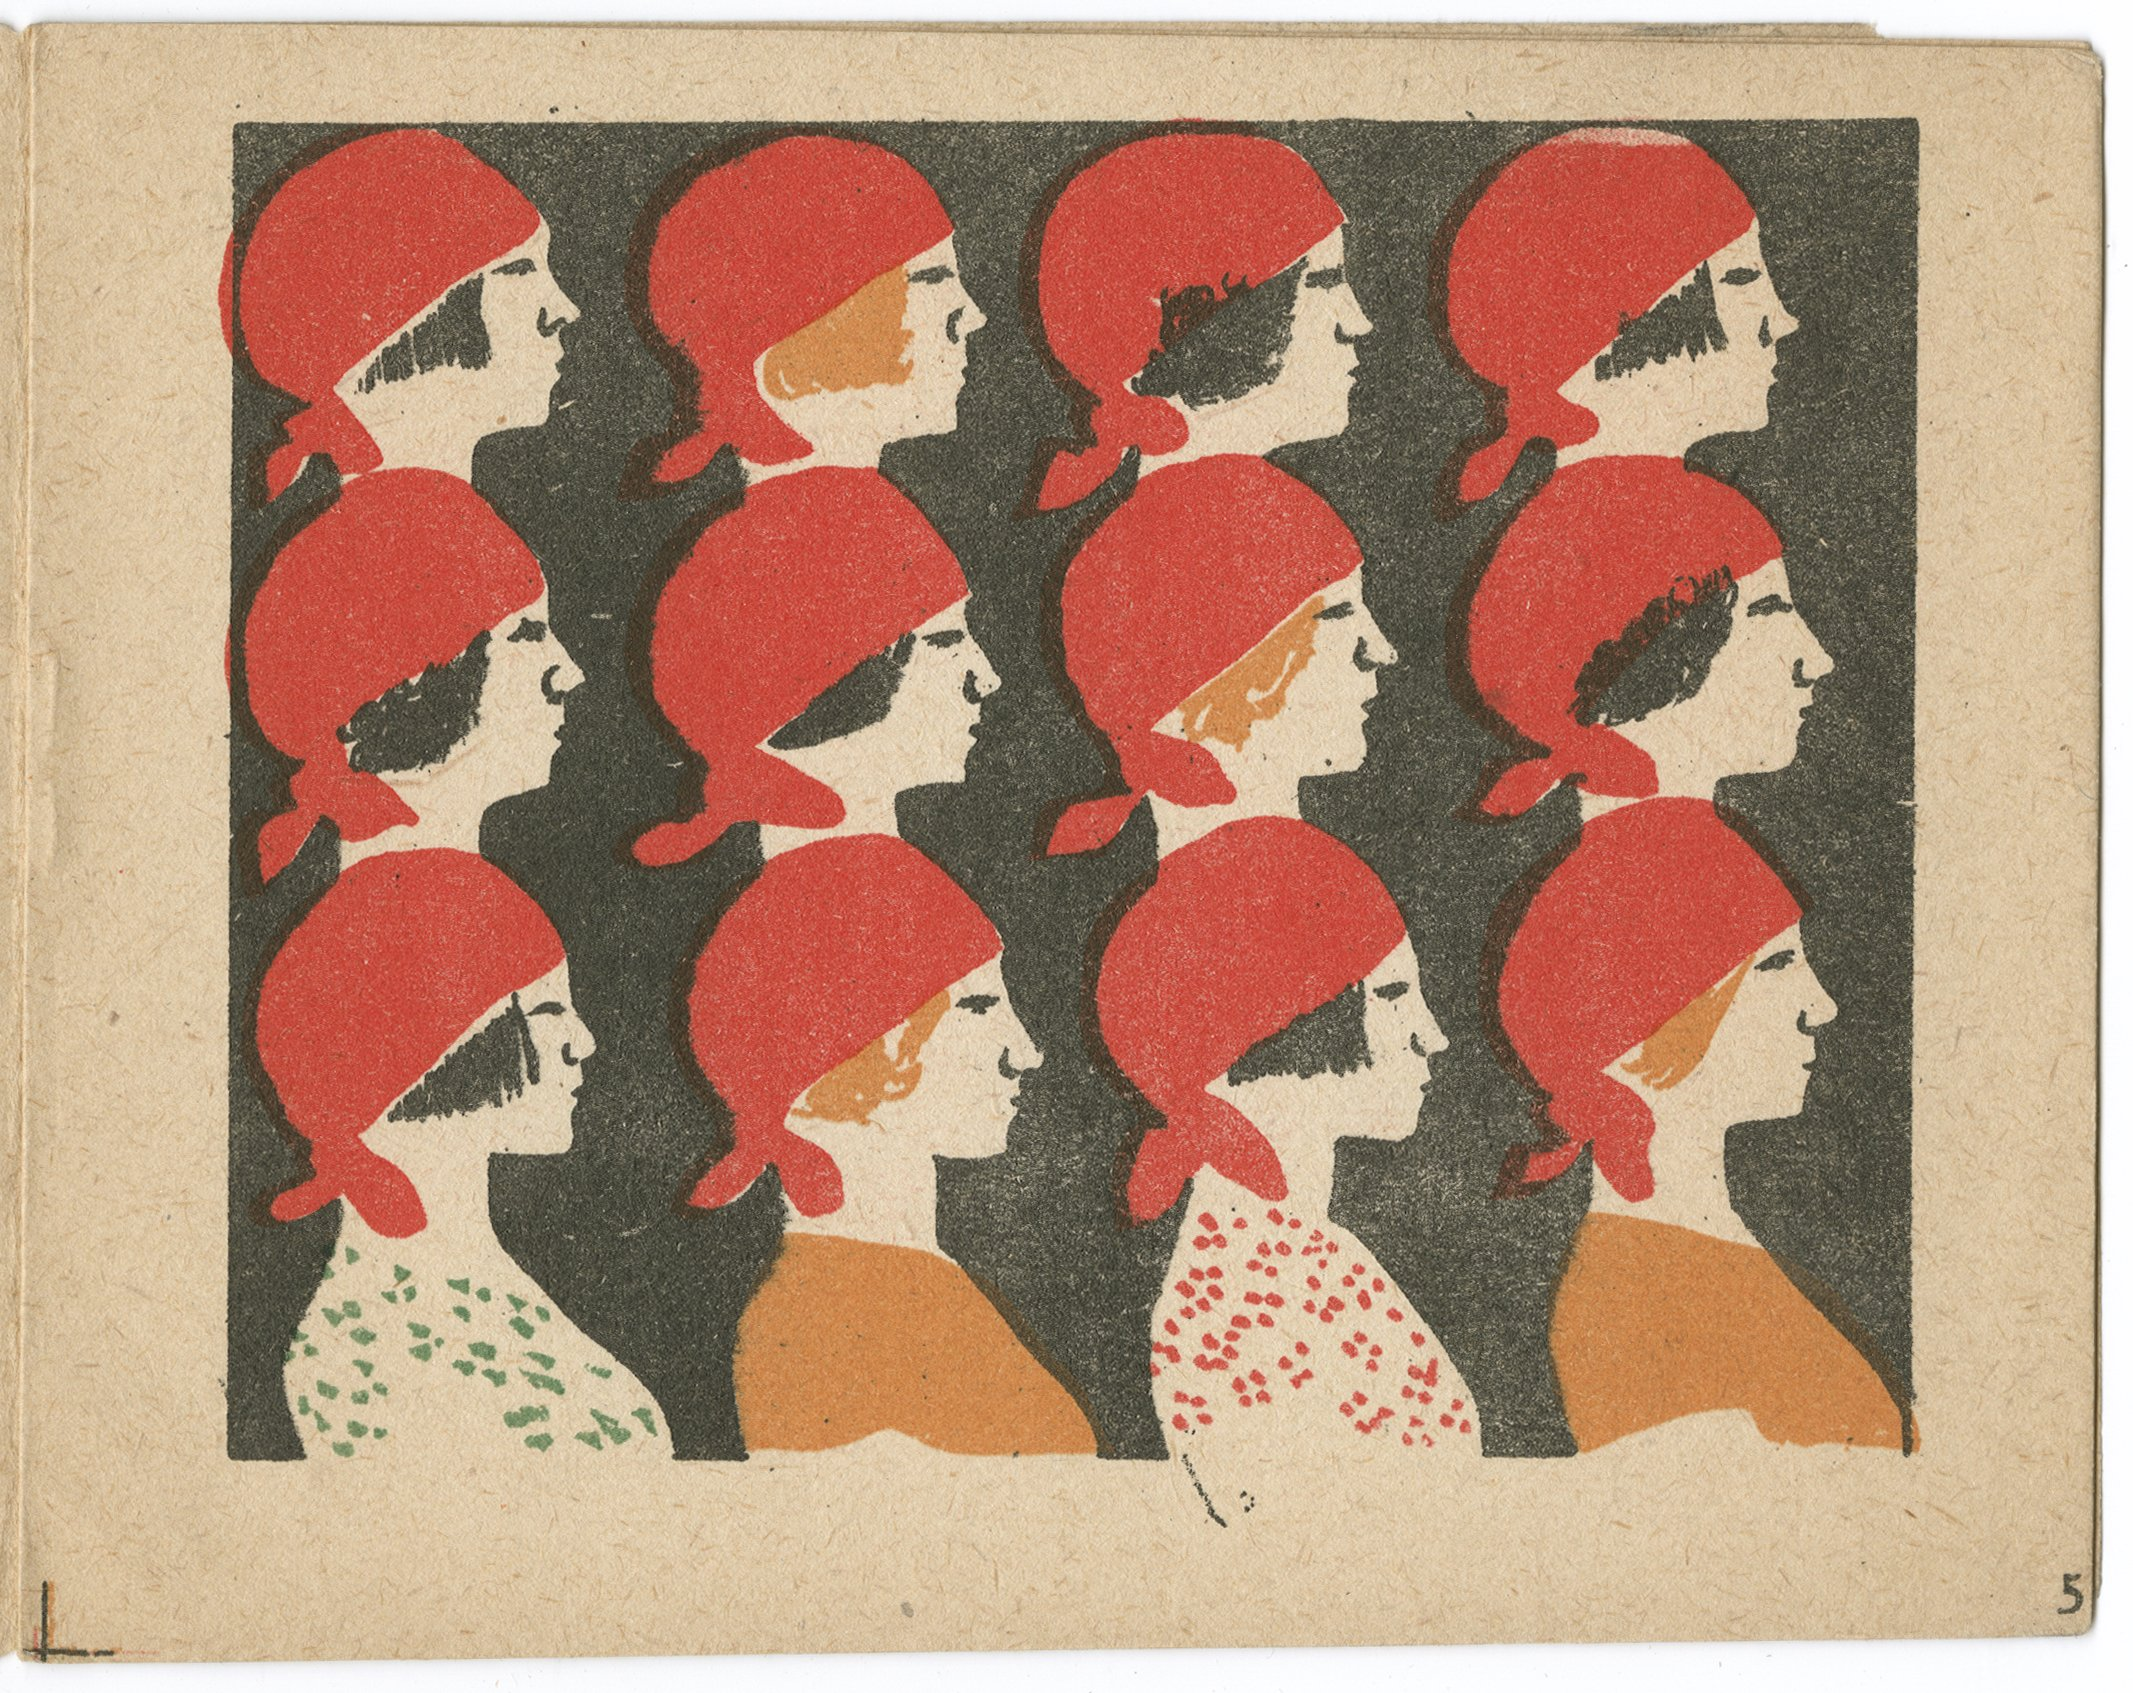 Women with red caps standing in rows.